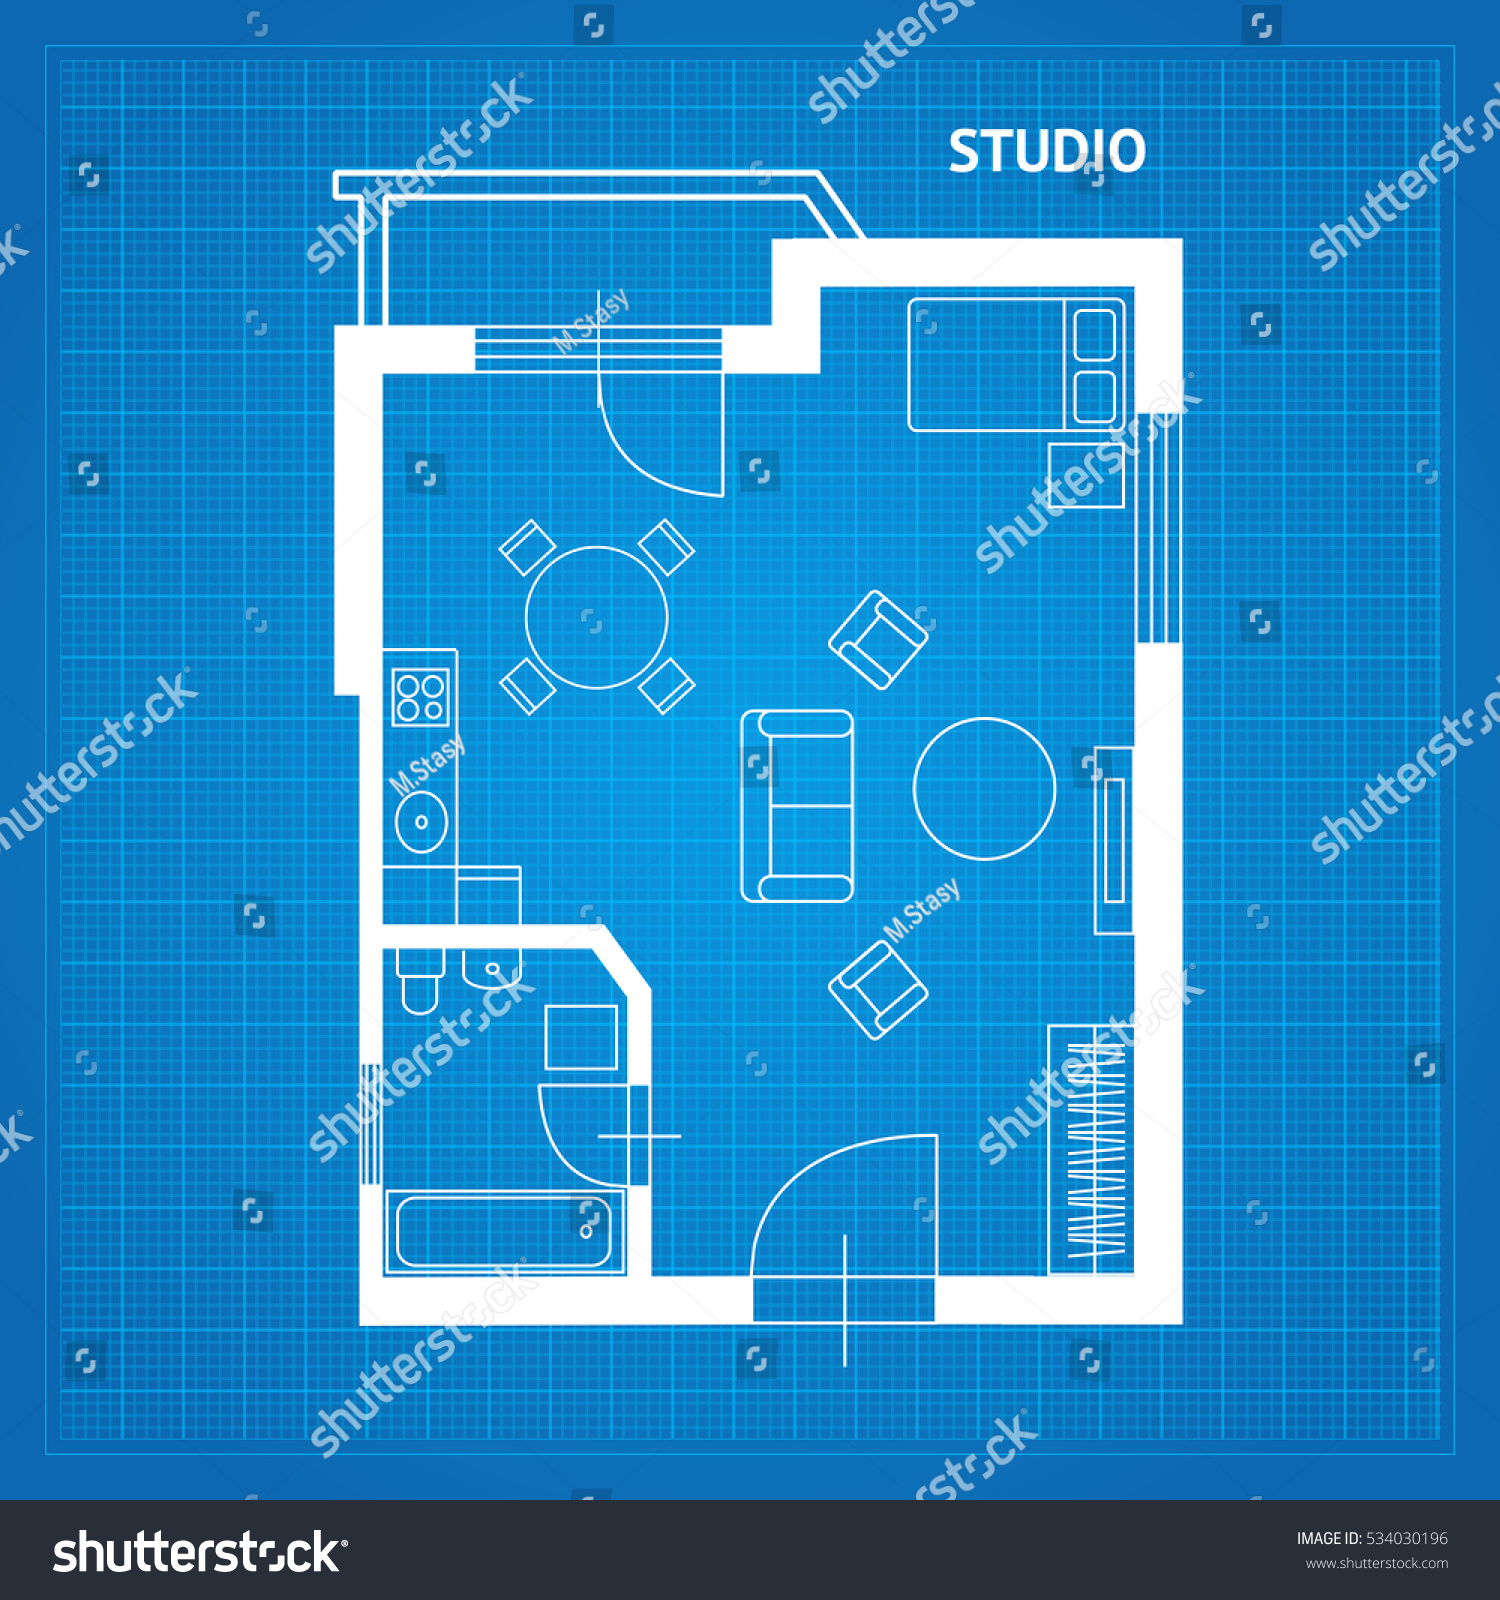 Blueprint of architect choice image blueprint design and blueprint the human blueprint malvernweather Choice Image